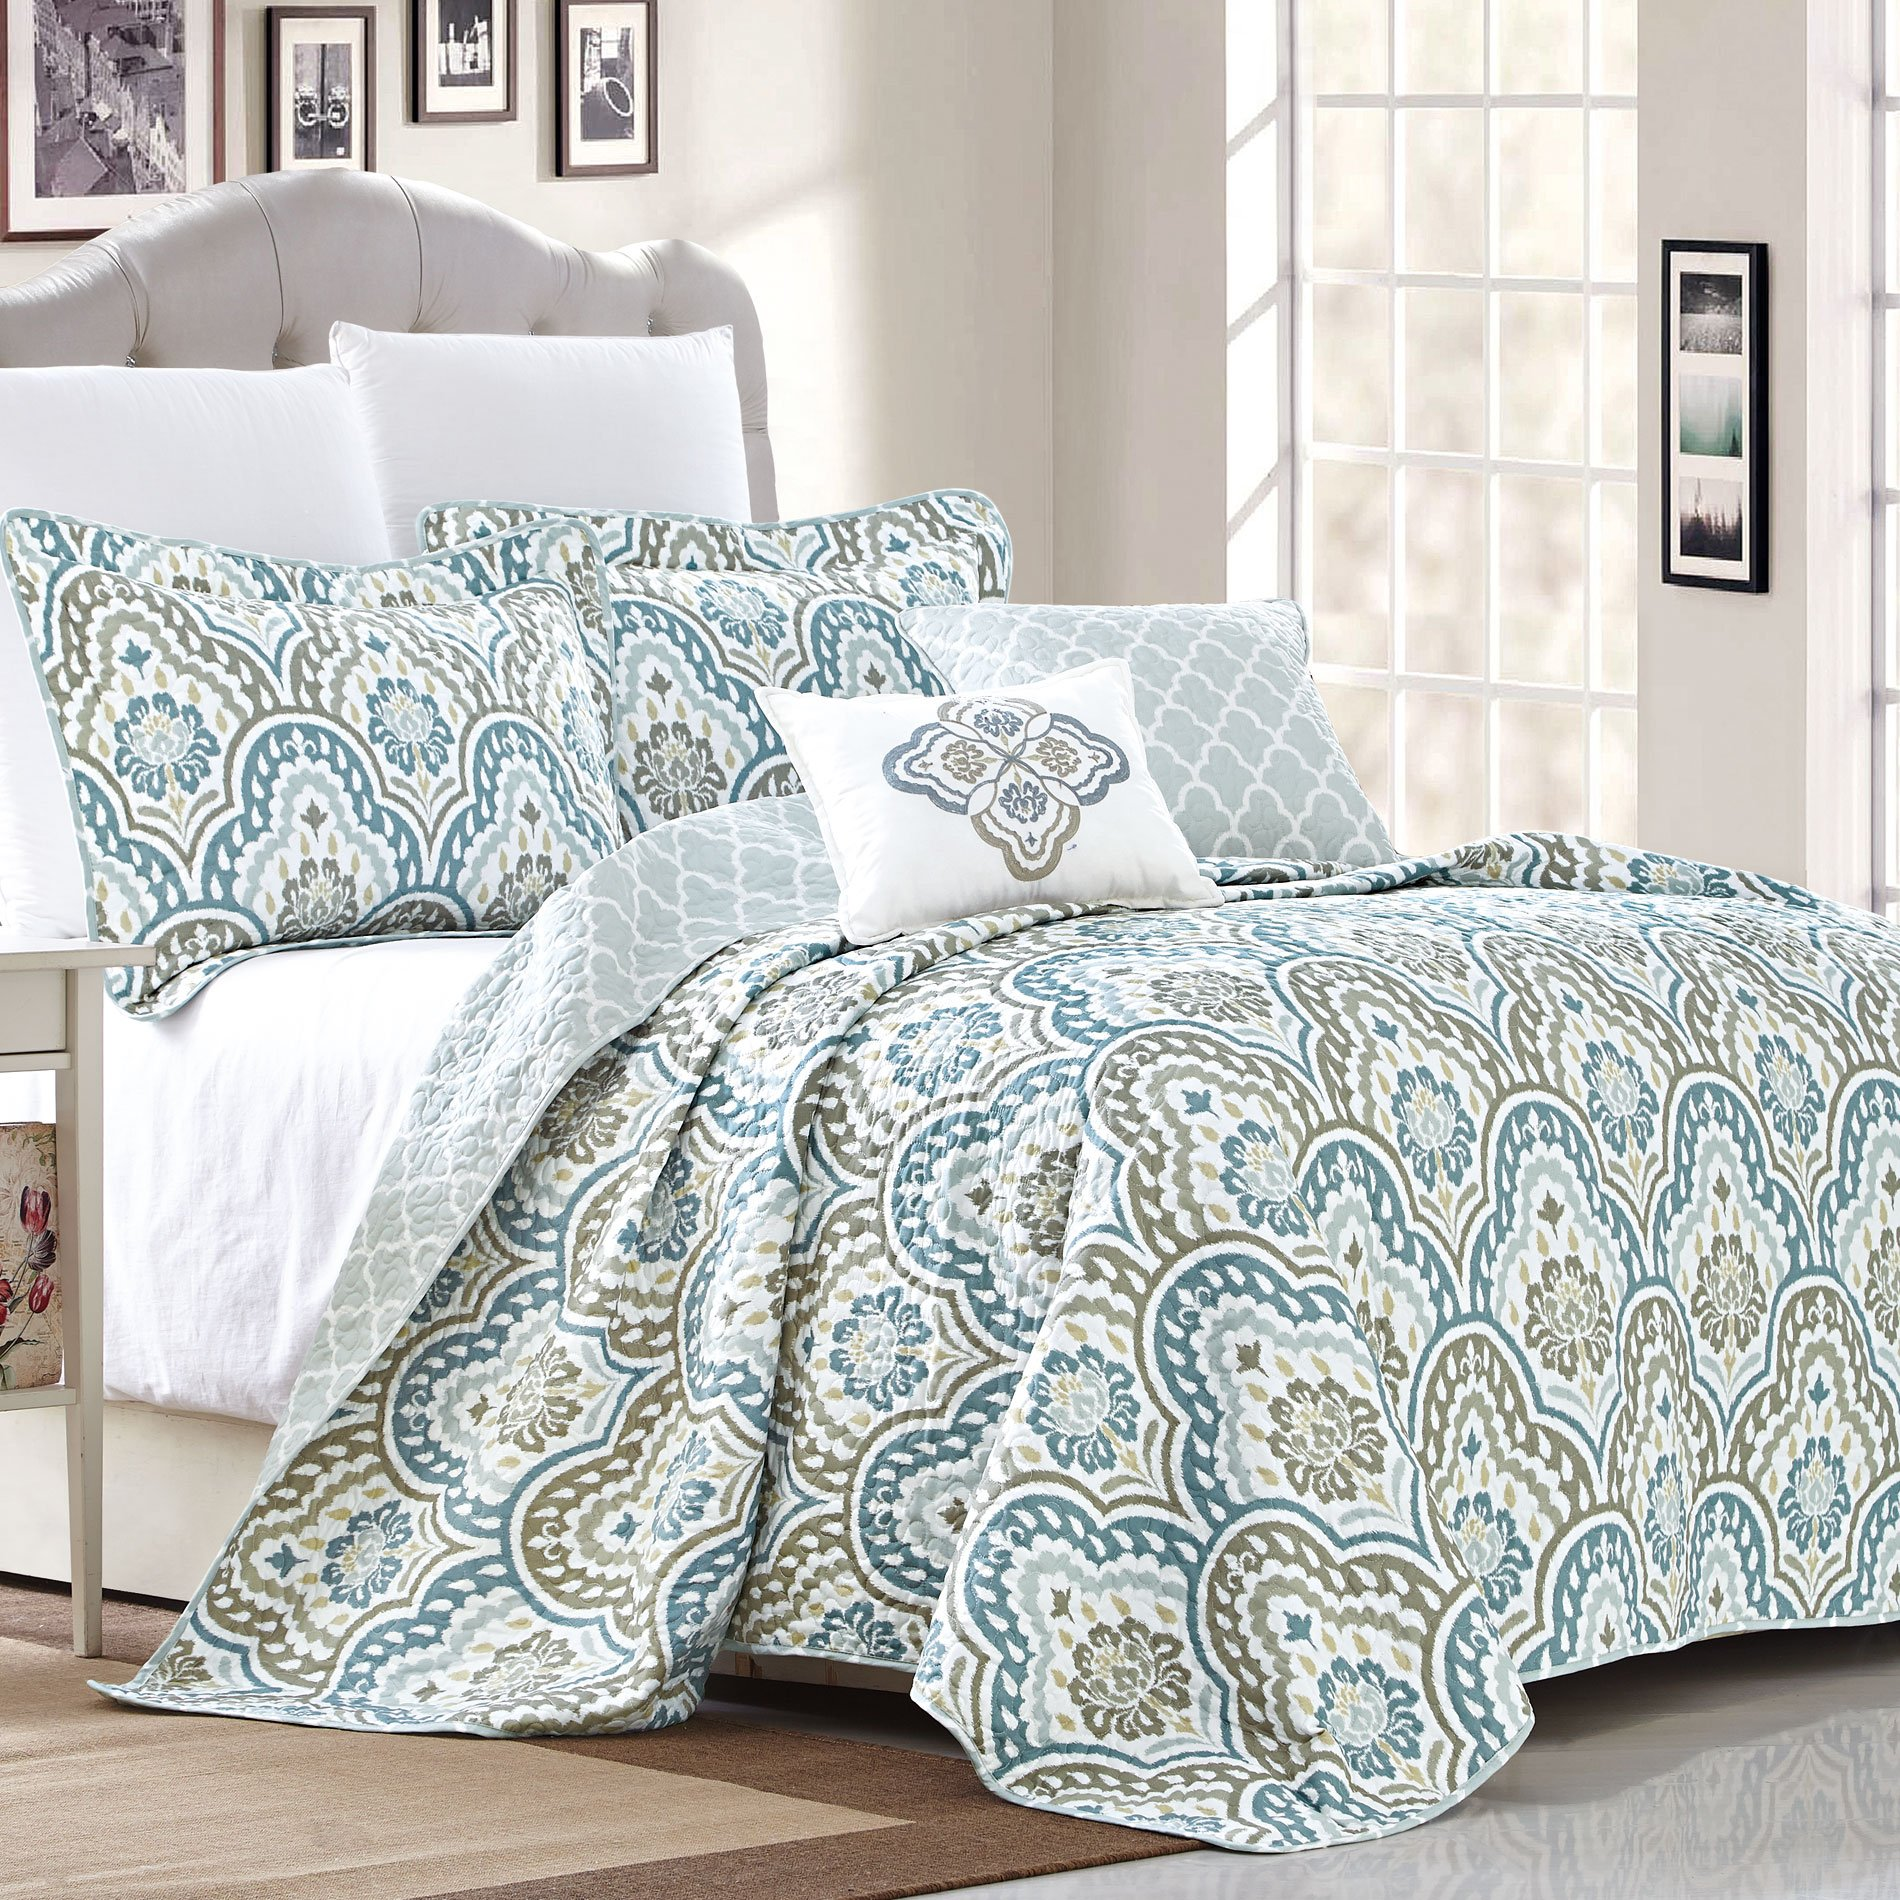 Home Soft Things Serenta Tivoli Ikat Design 5 Piece Teal Aqua Printed Prewashed Quilted Coverlet Bedspread Bed cover Summer Quilt Blanket with Cotton Polyester Filled Embroidery Pillow Set, Queen